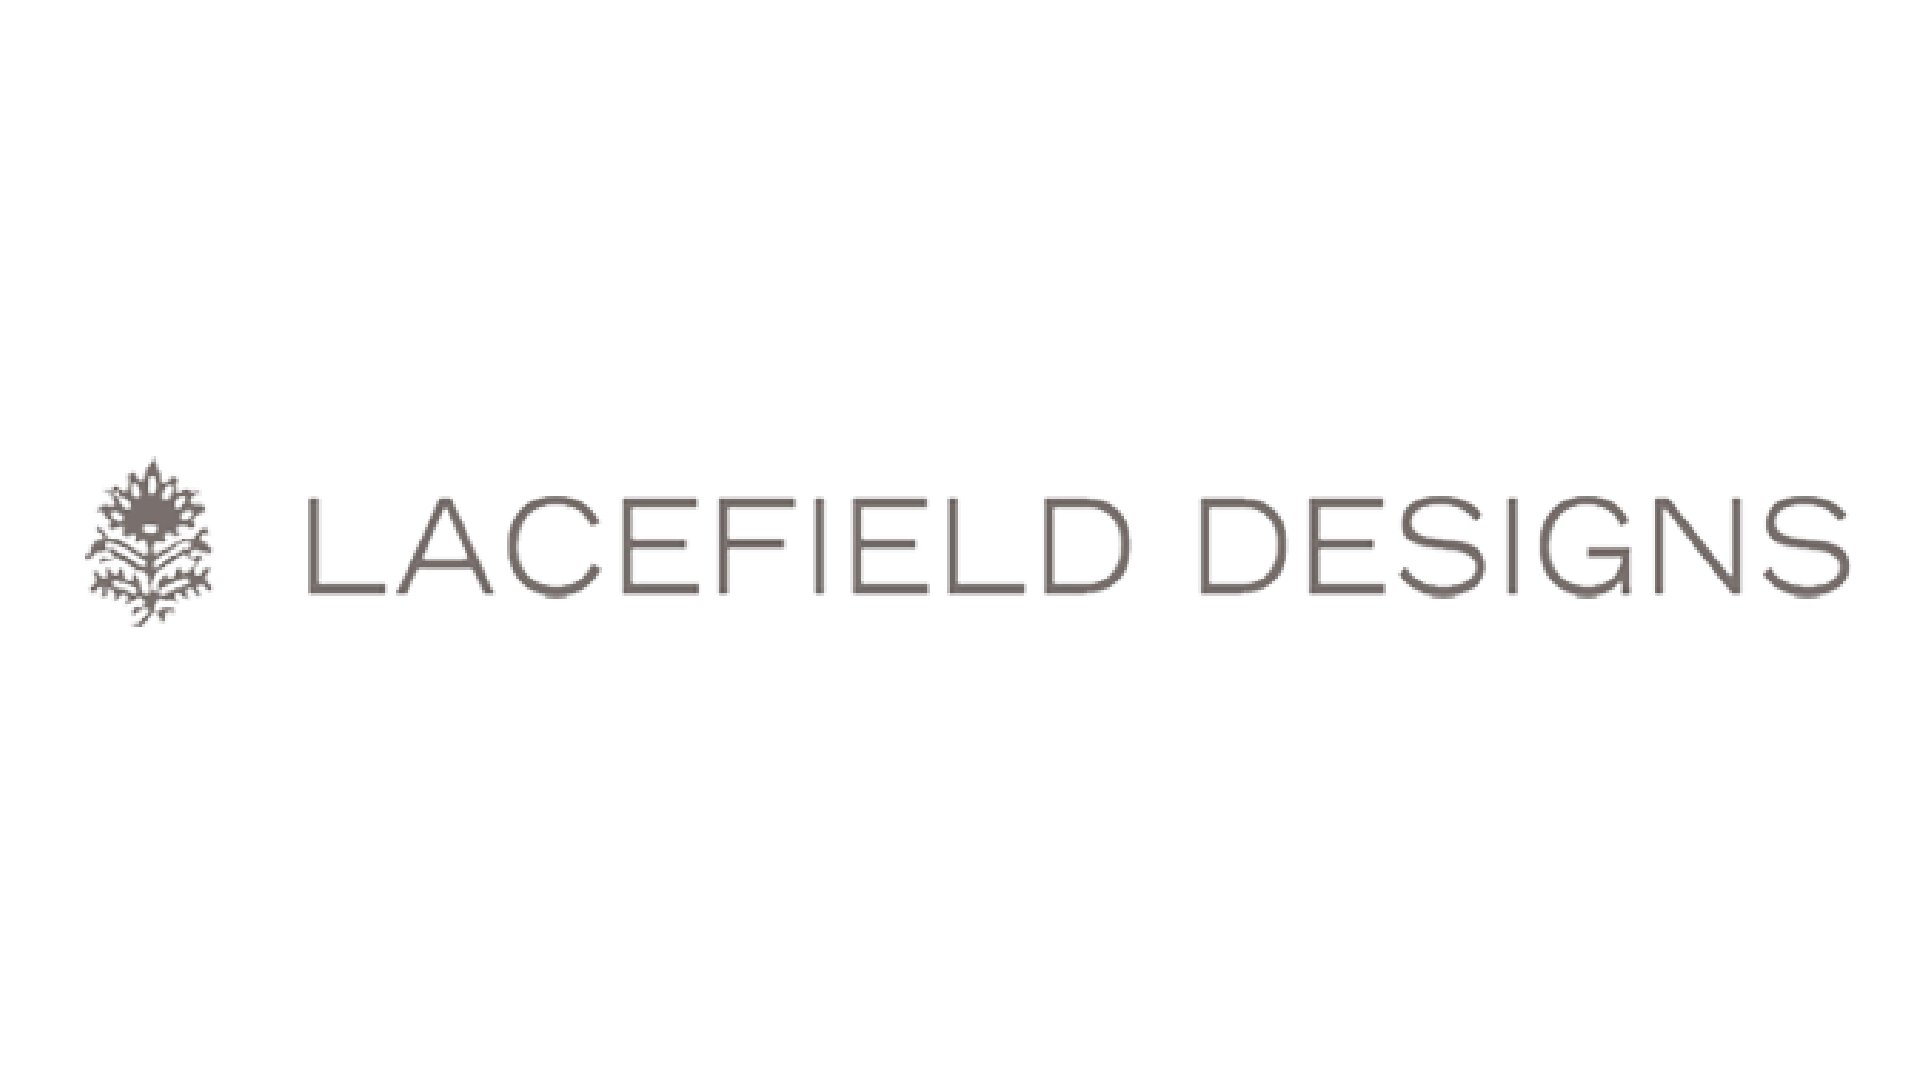 Lacefield Designs - https://www.lacefielddesigns.com/